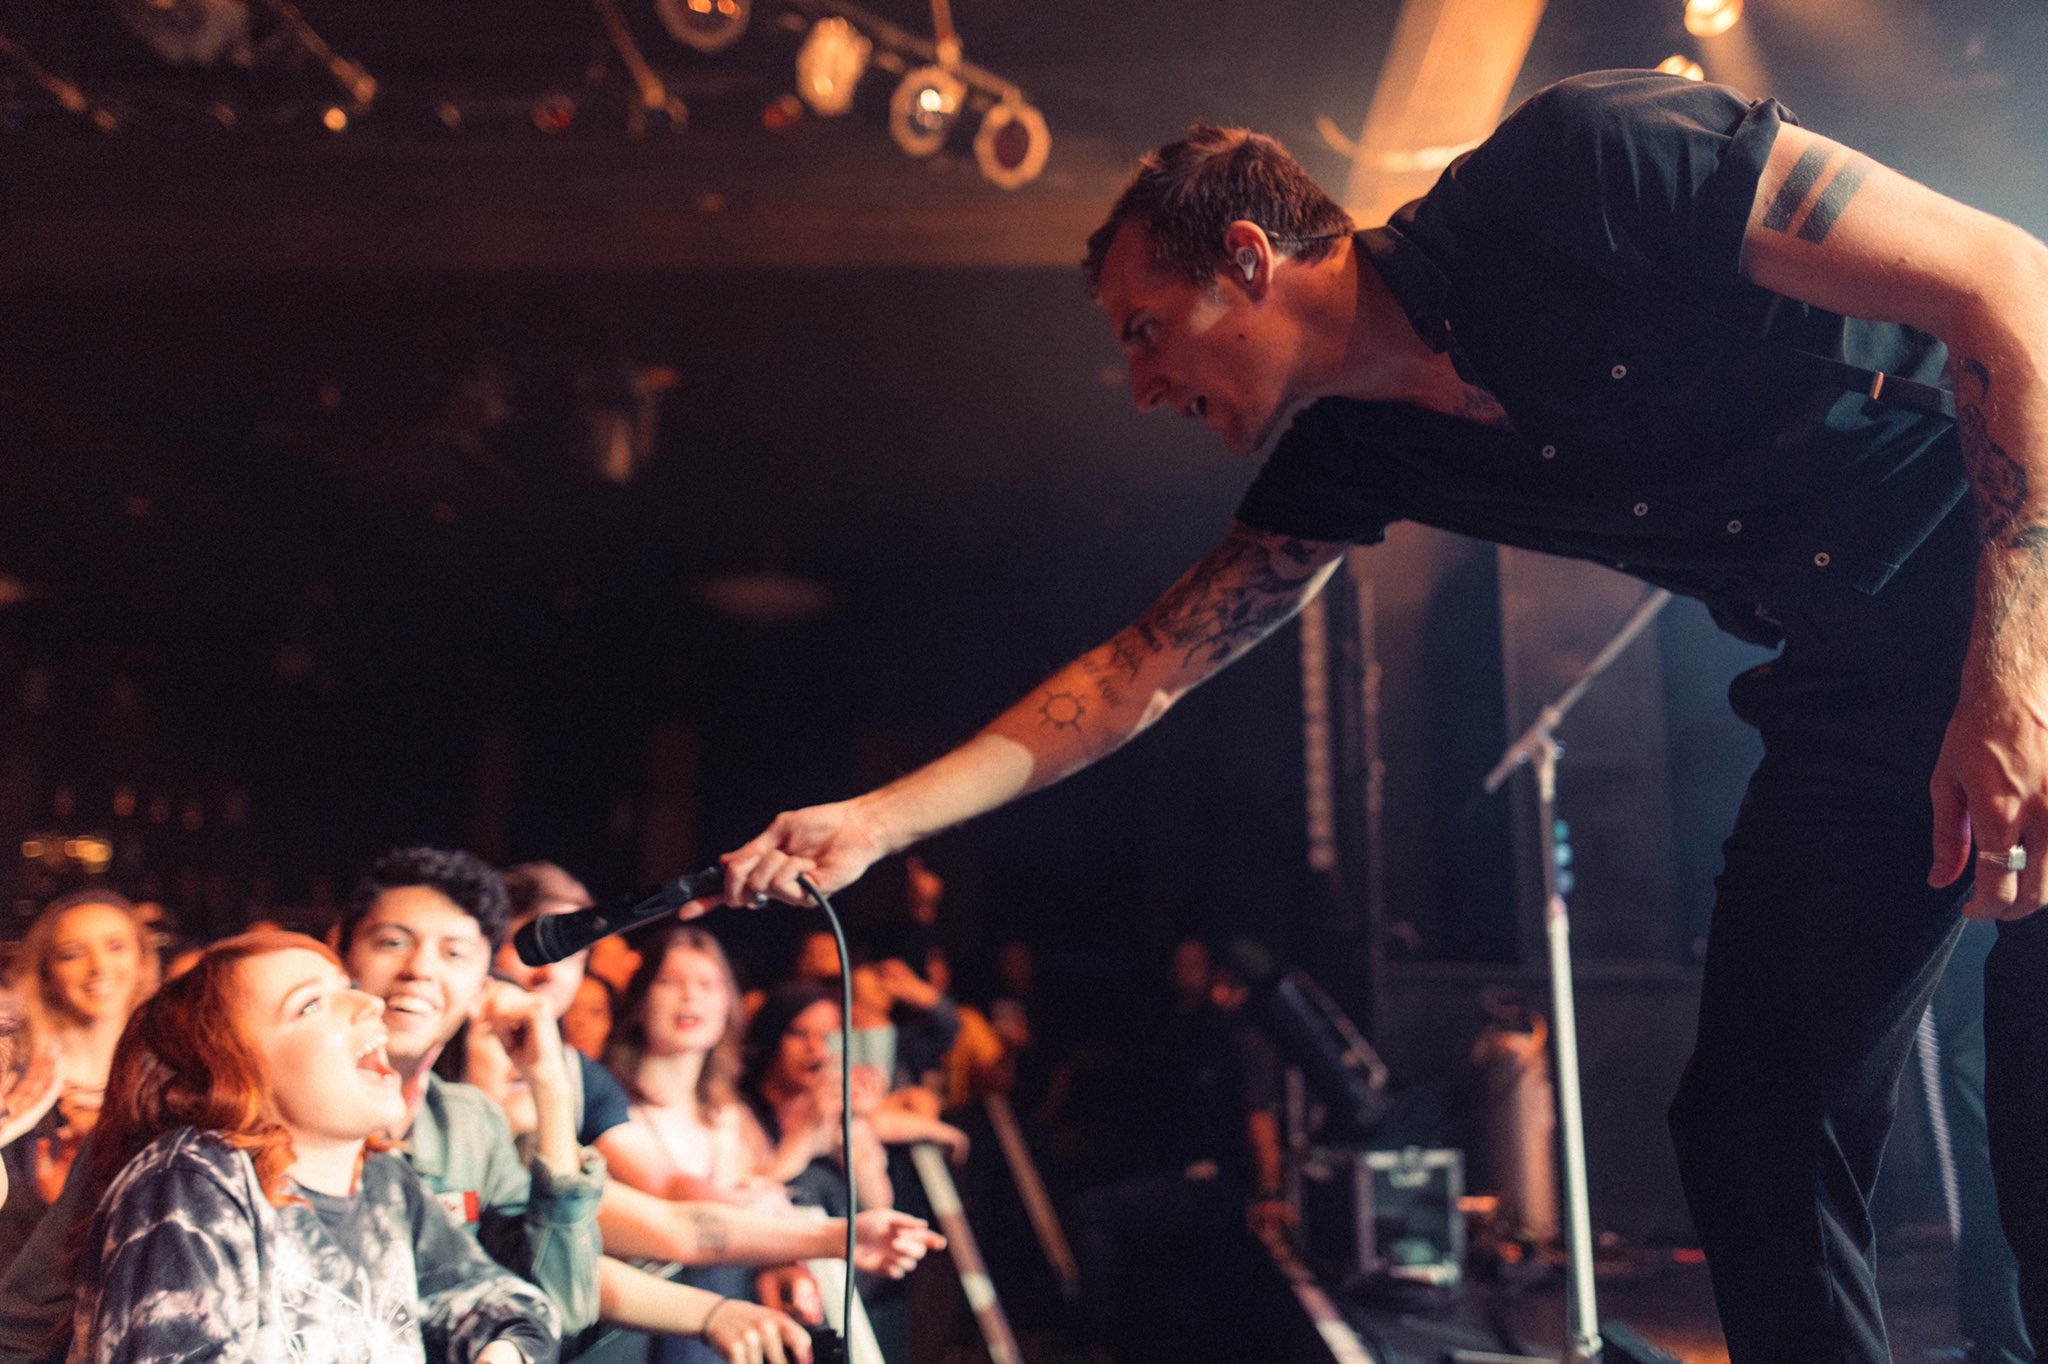 """The Maine - """"Slip The Noose"""" Performance & Interview - SOUND"""